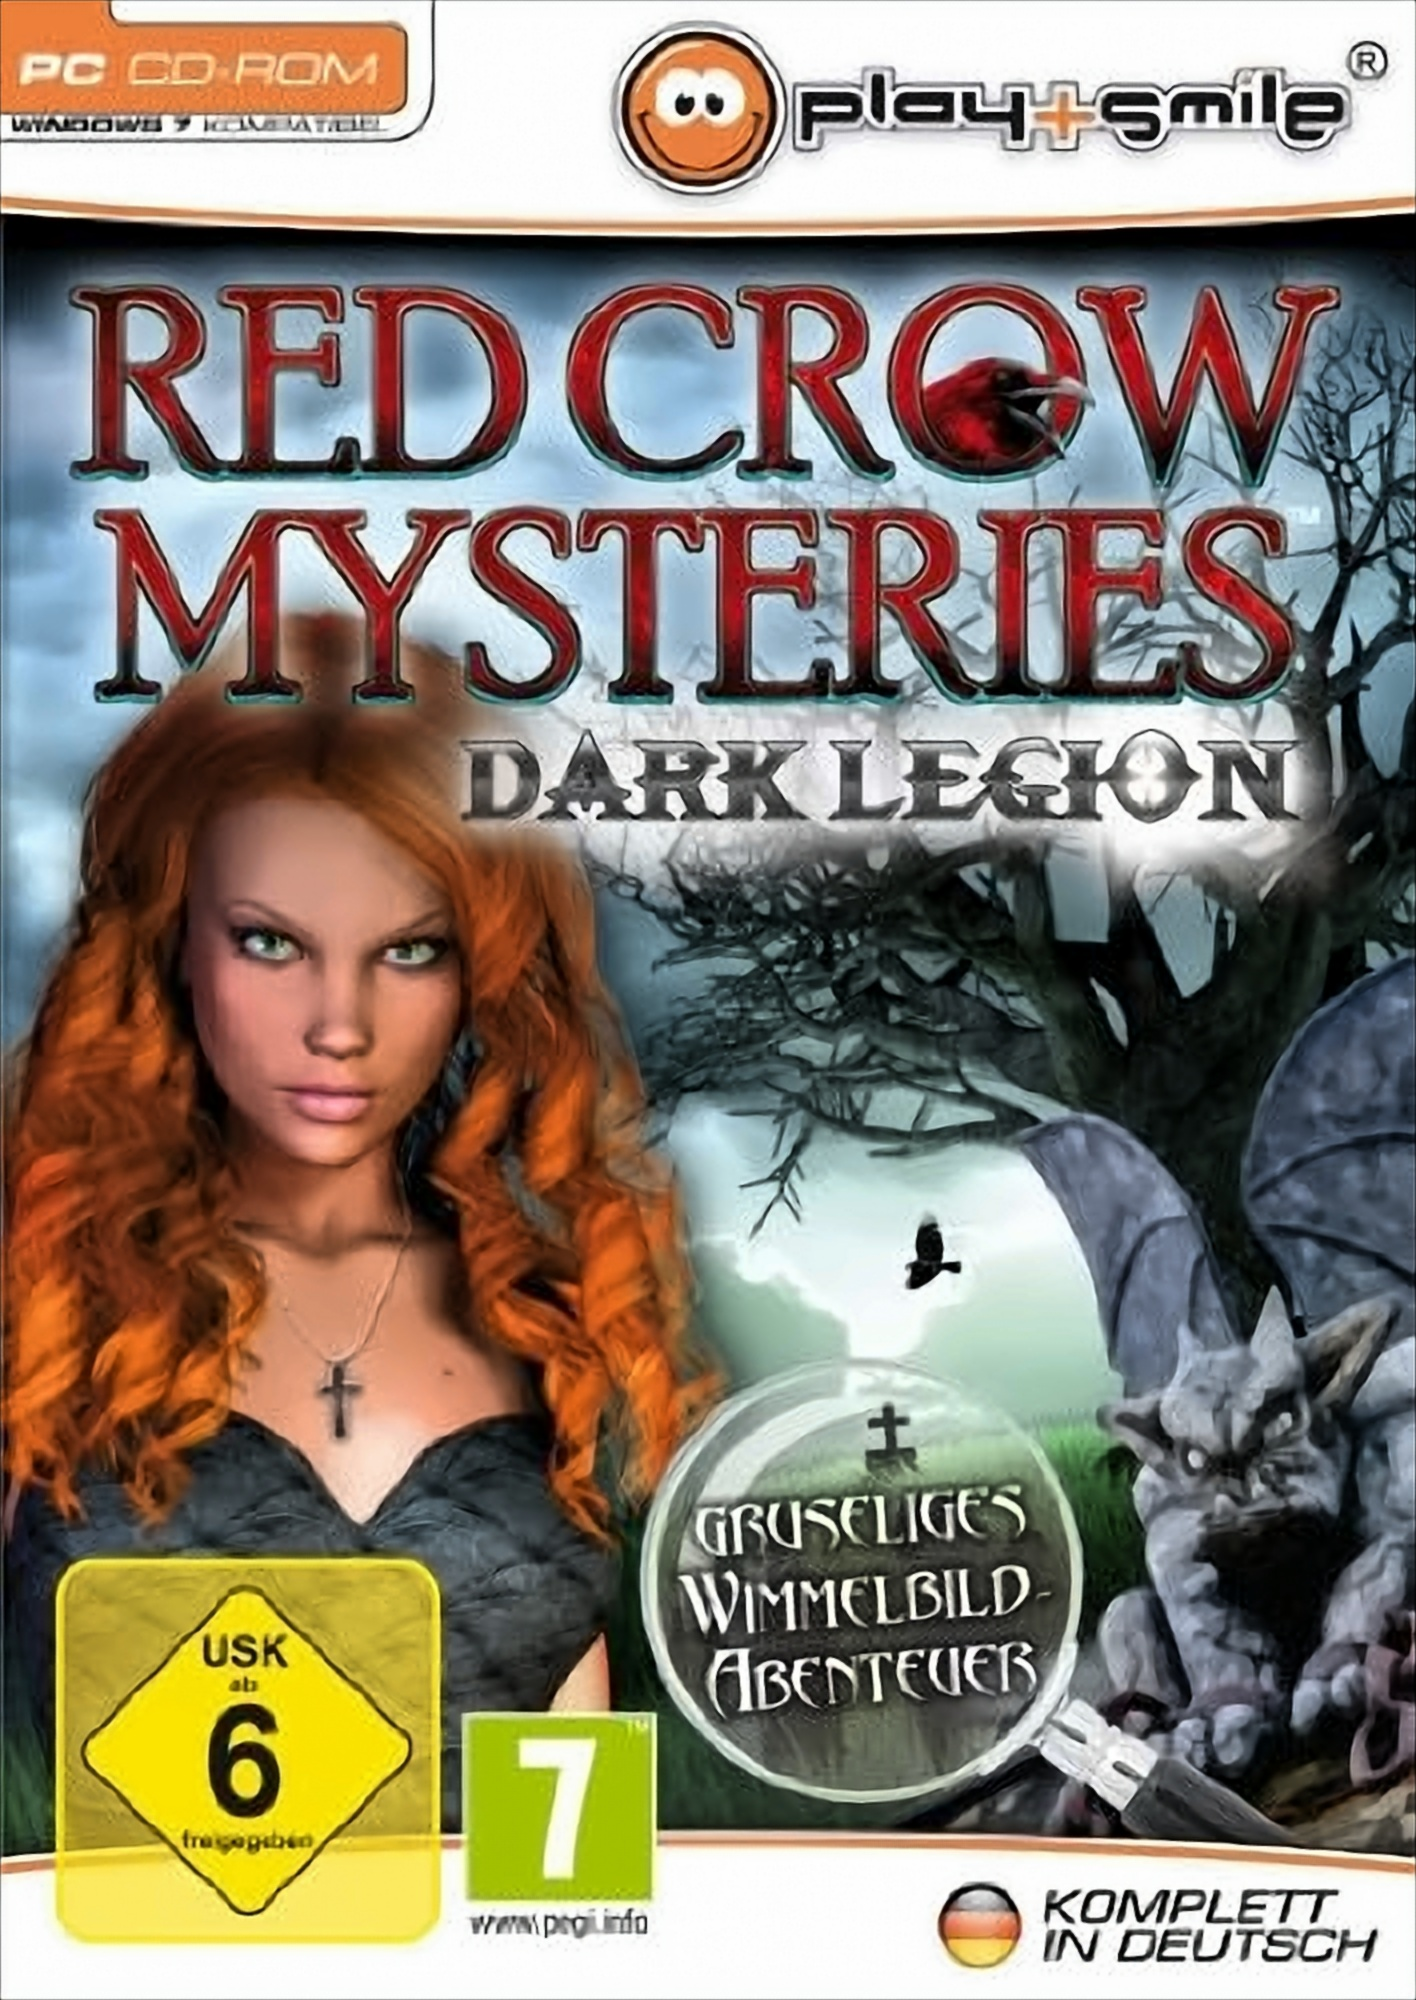 Red Crow Mysterys: Dark Legion